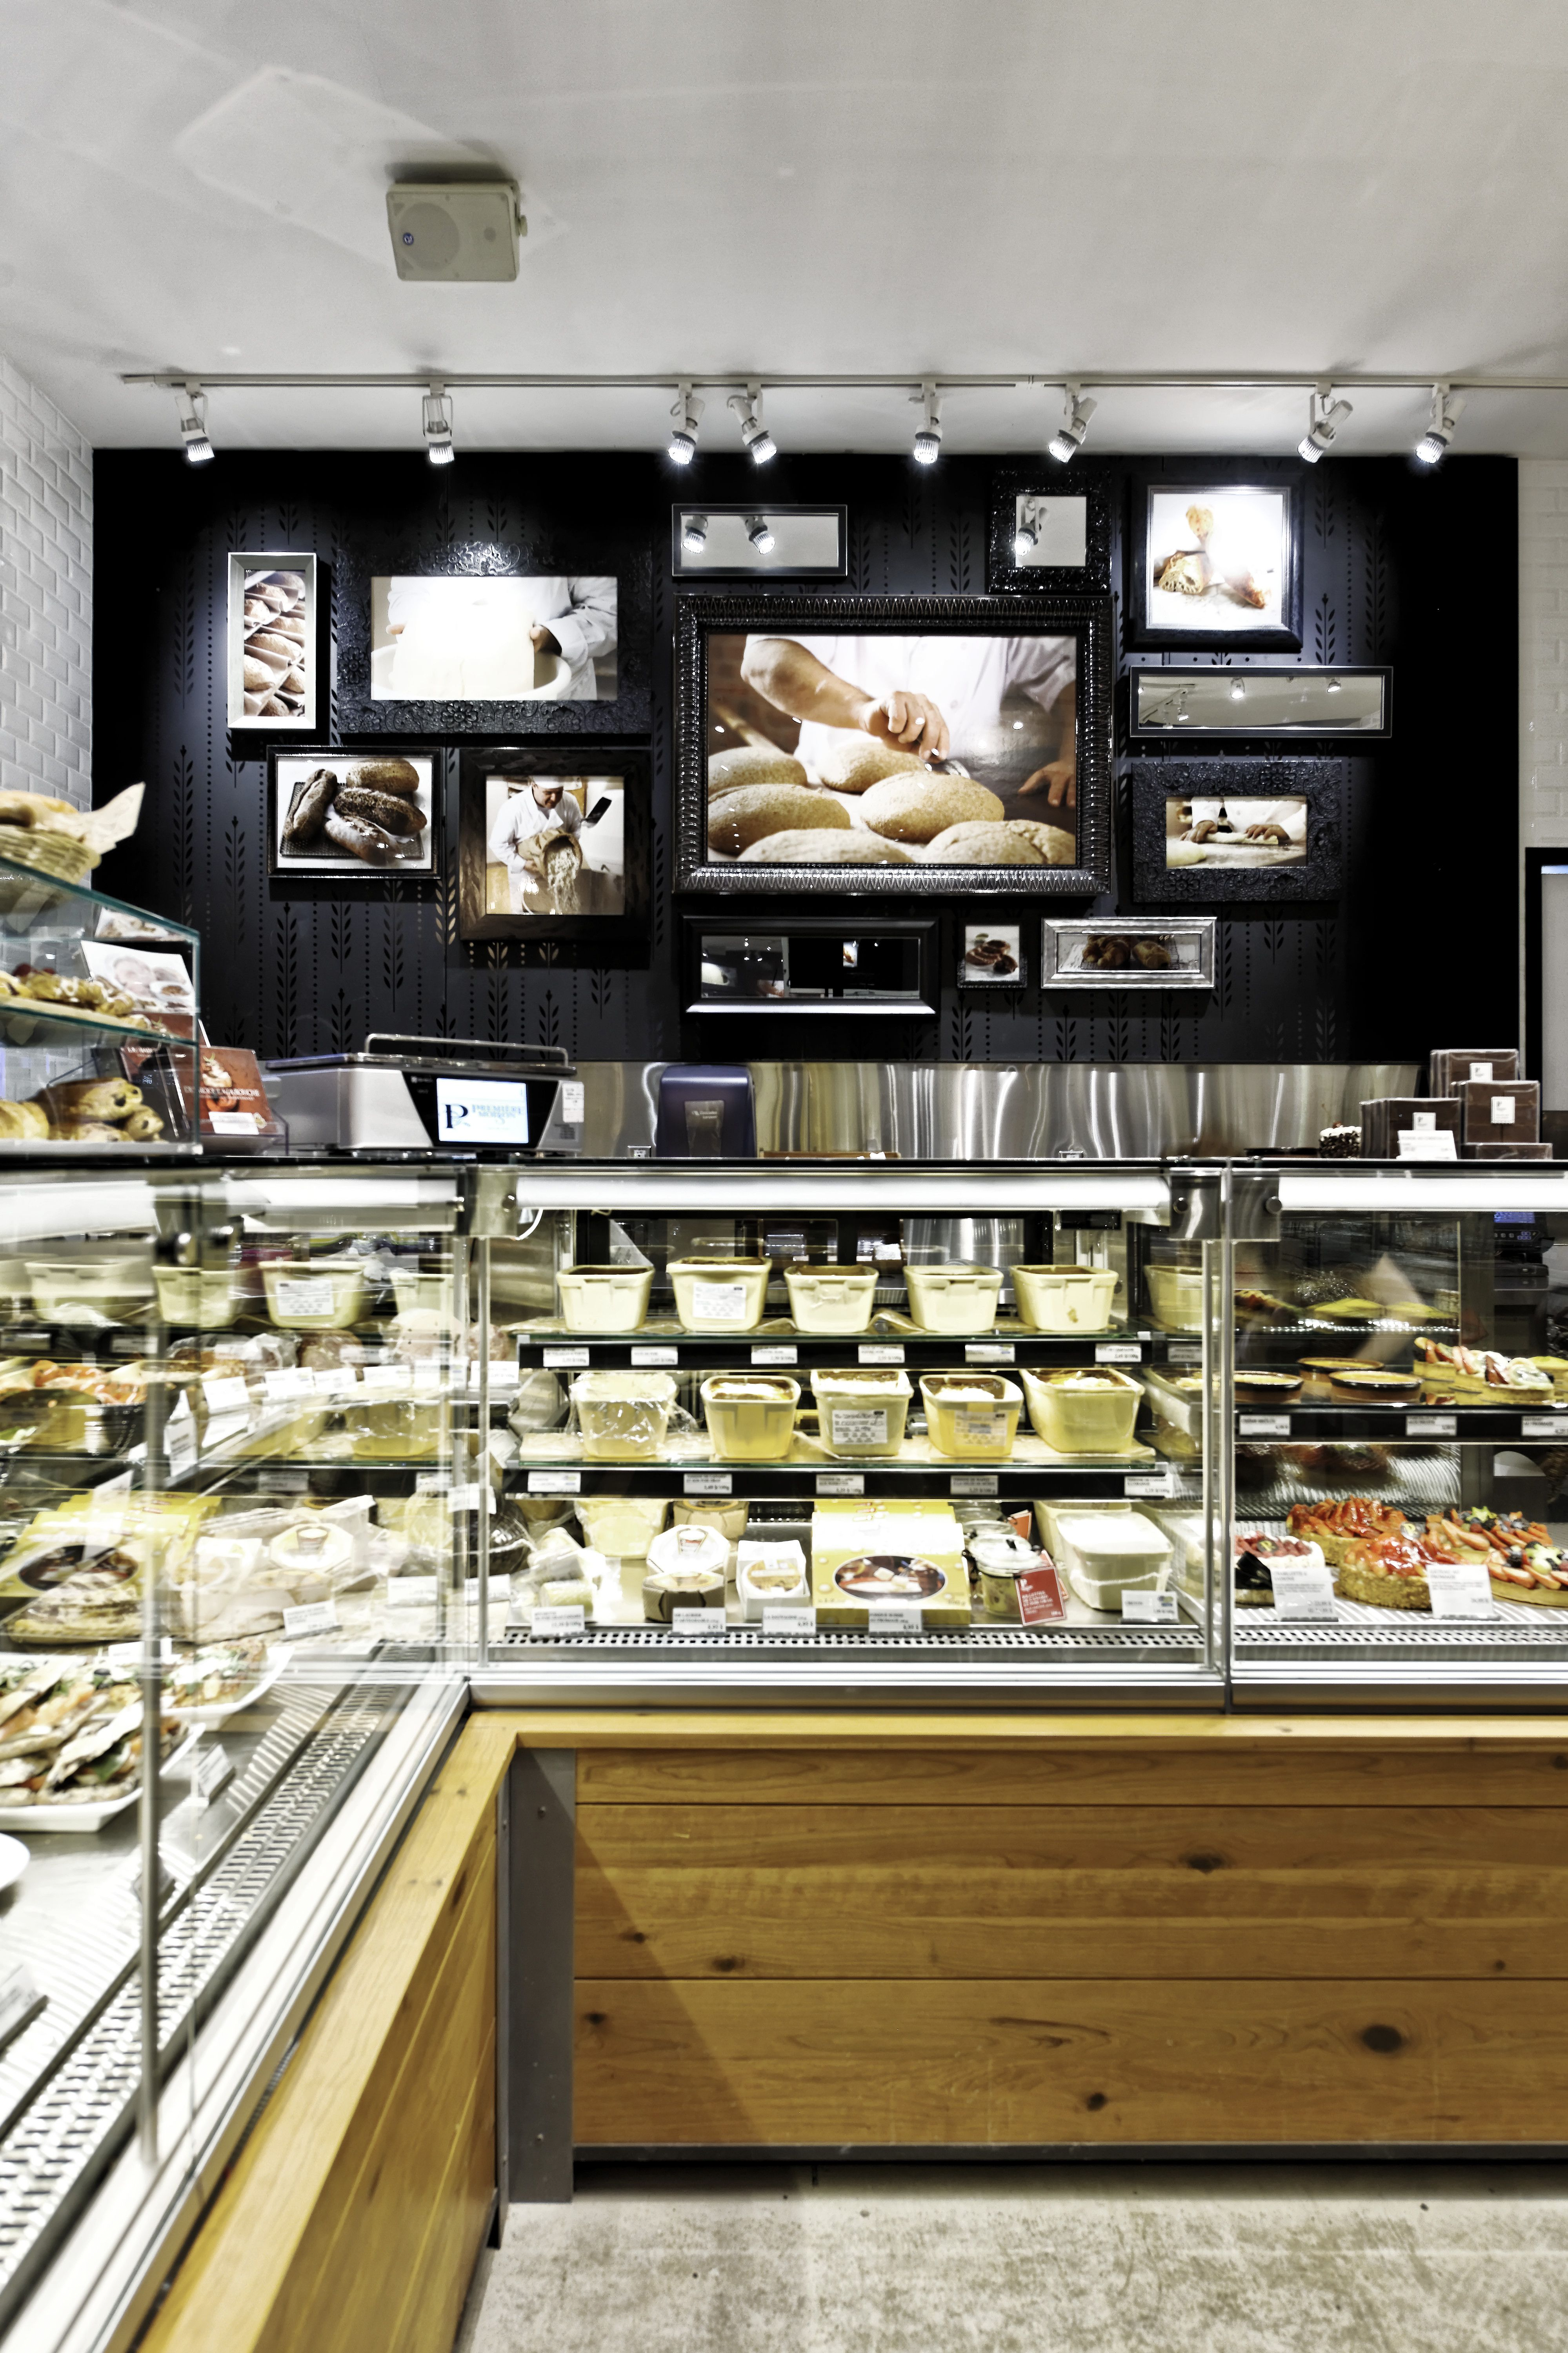 Lemaymichaud premi re moisson qu bec architecture for Bakery shop decoration ideas